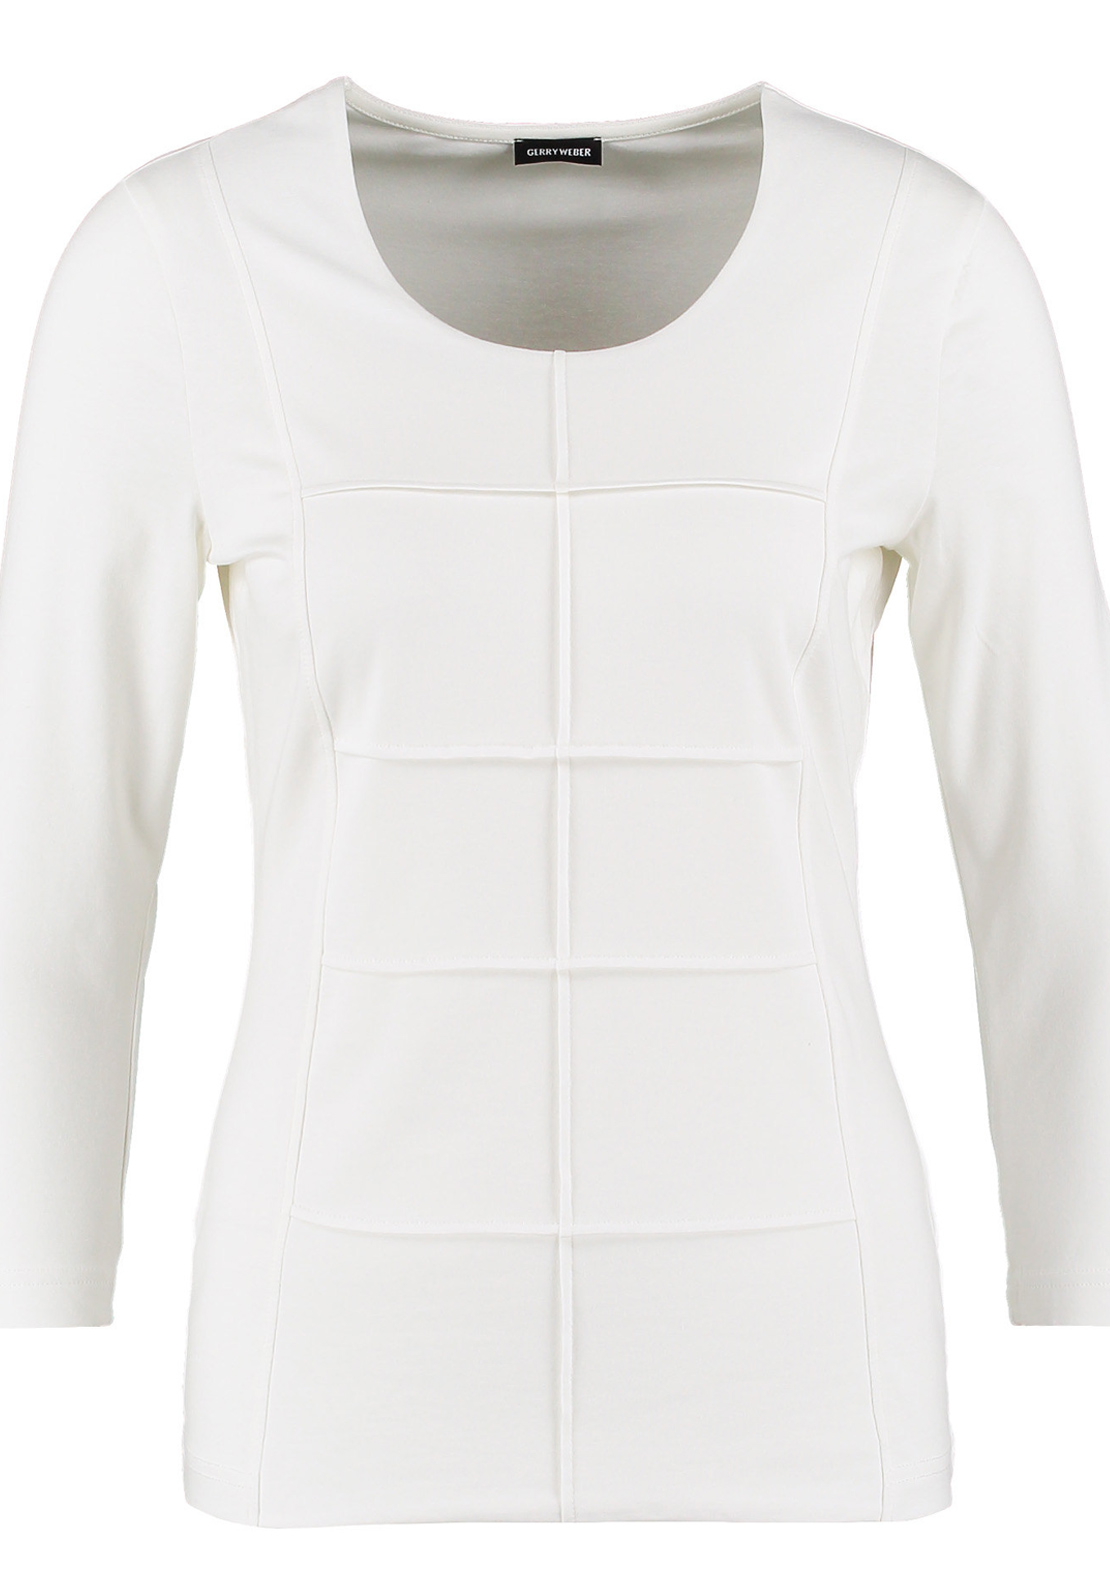 Gerry Weber Embossed Check Print Cropped Sleeve T-Shirt, Ivory